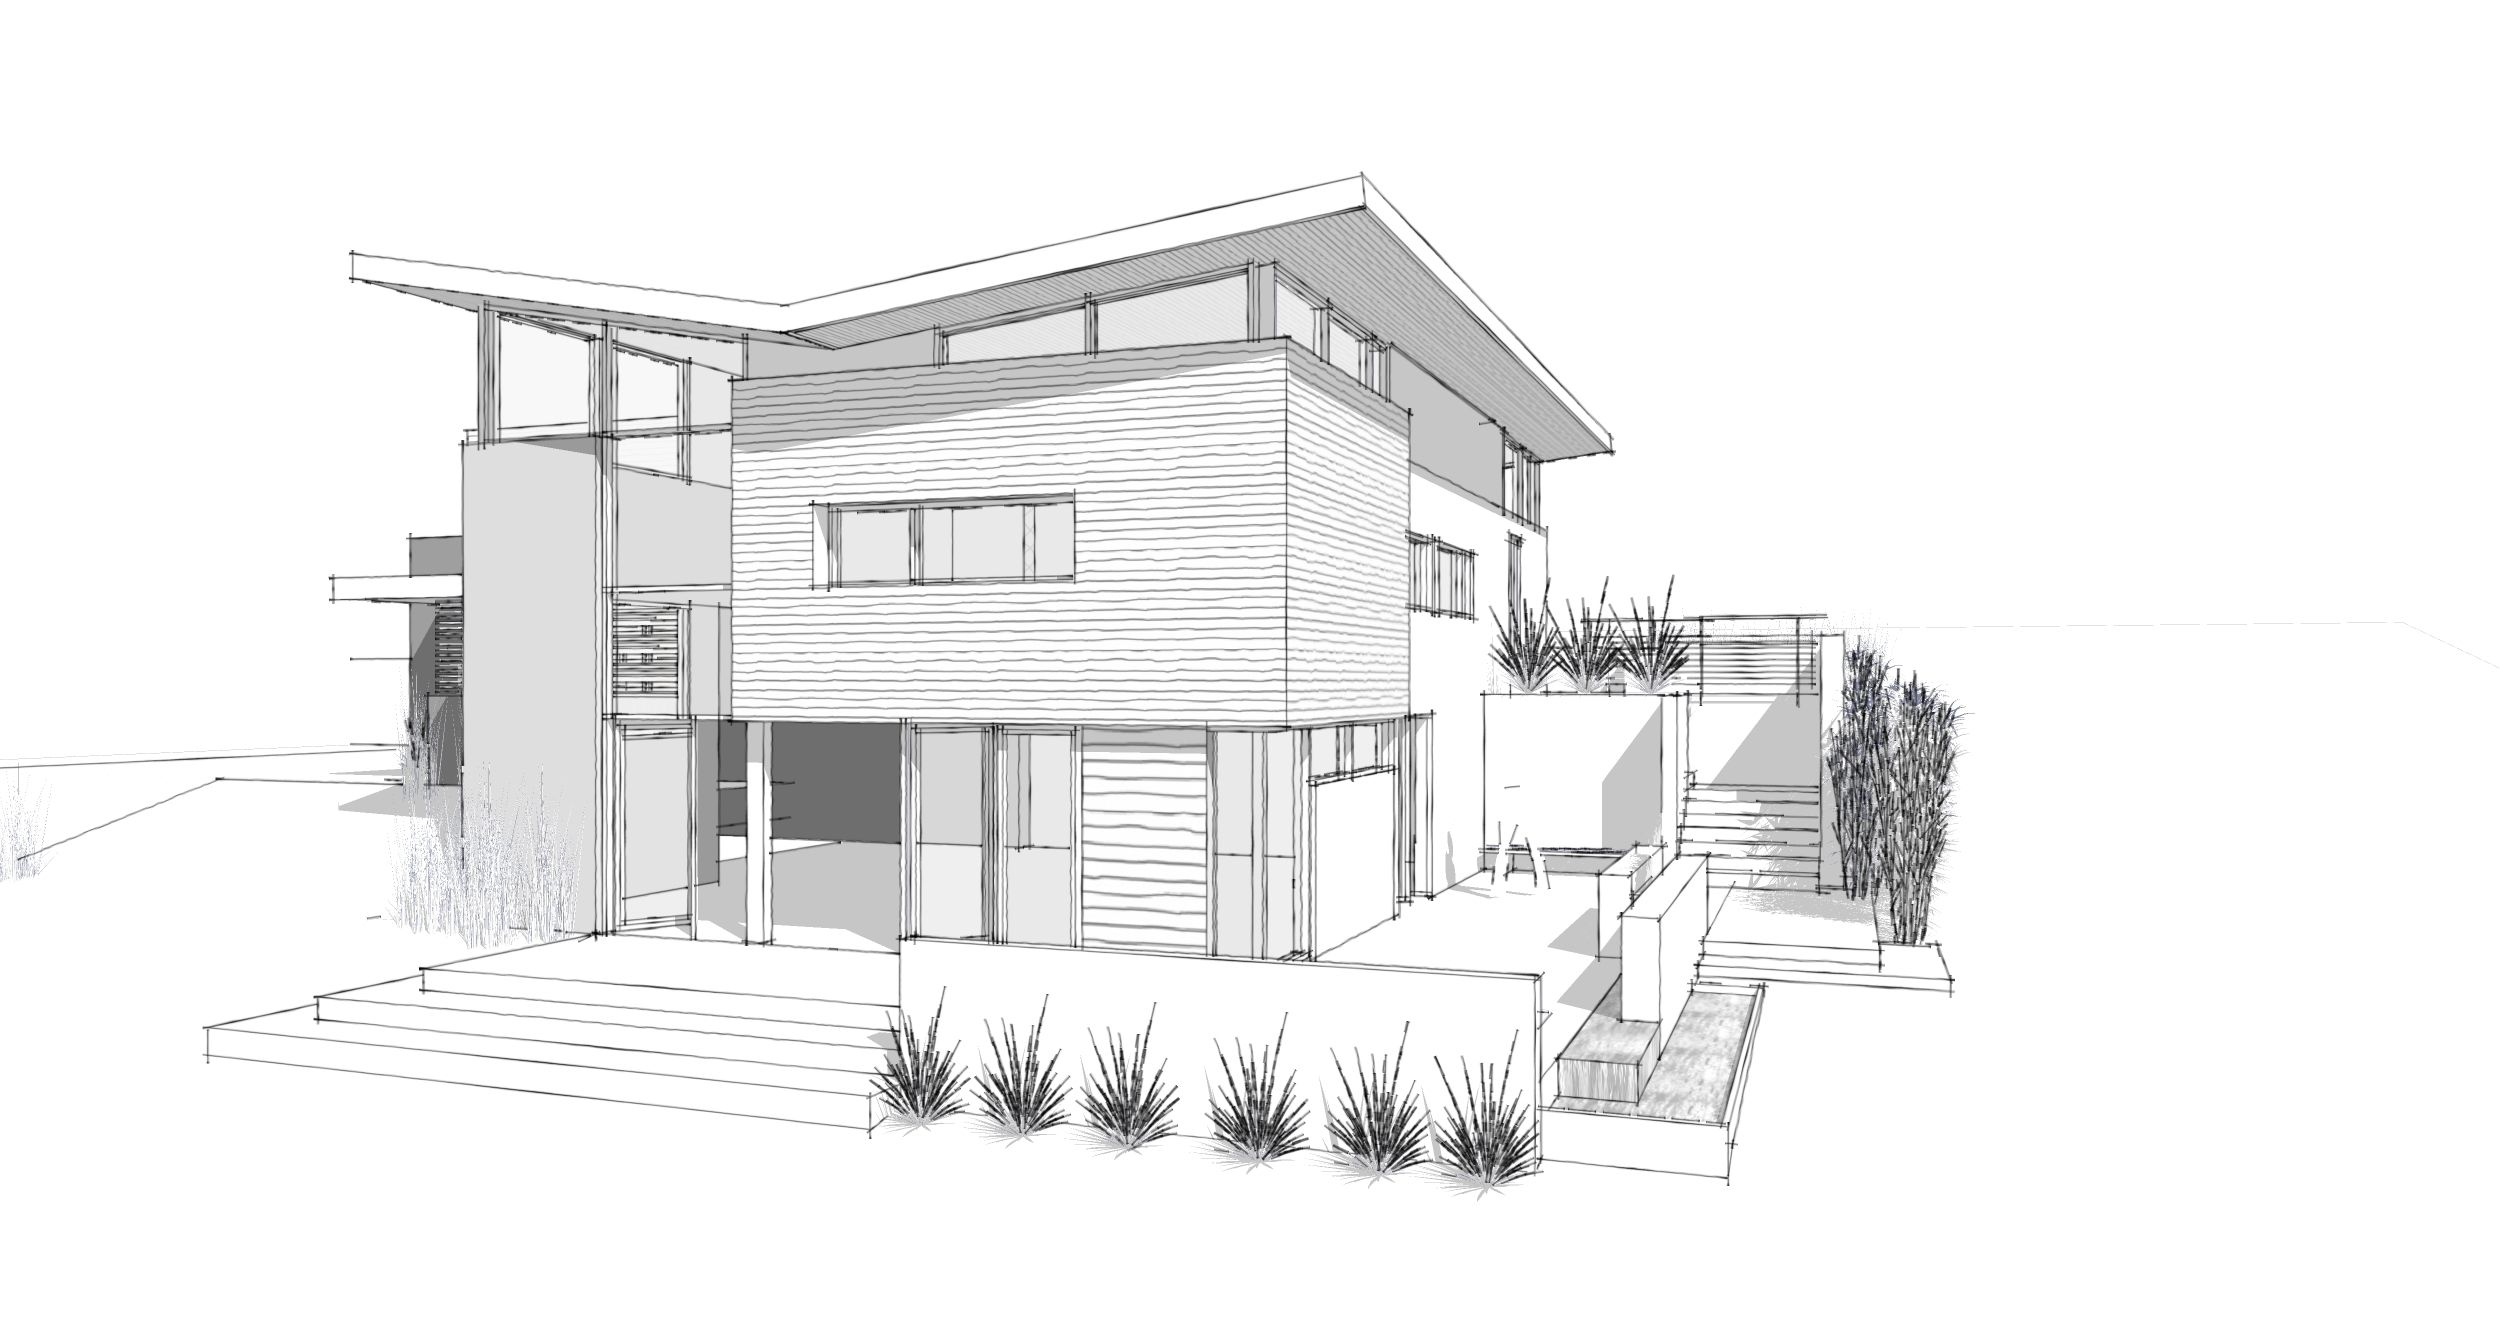 Pin by Alex Avila on sketchup drawings | House drawing ...